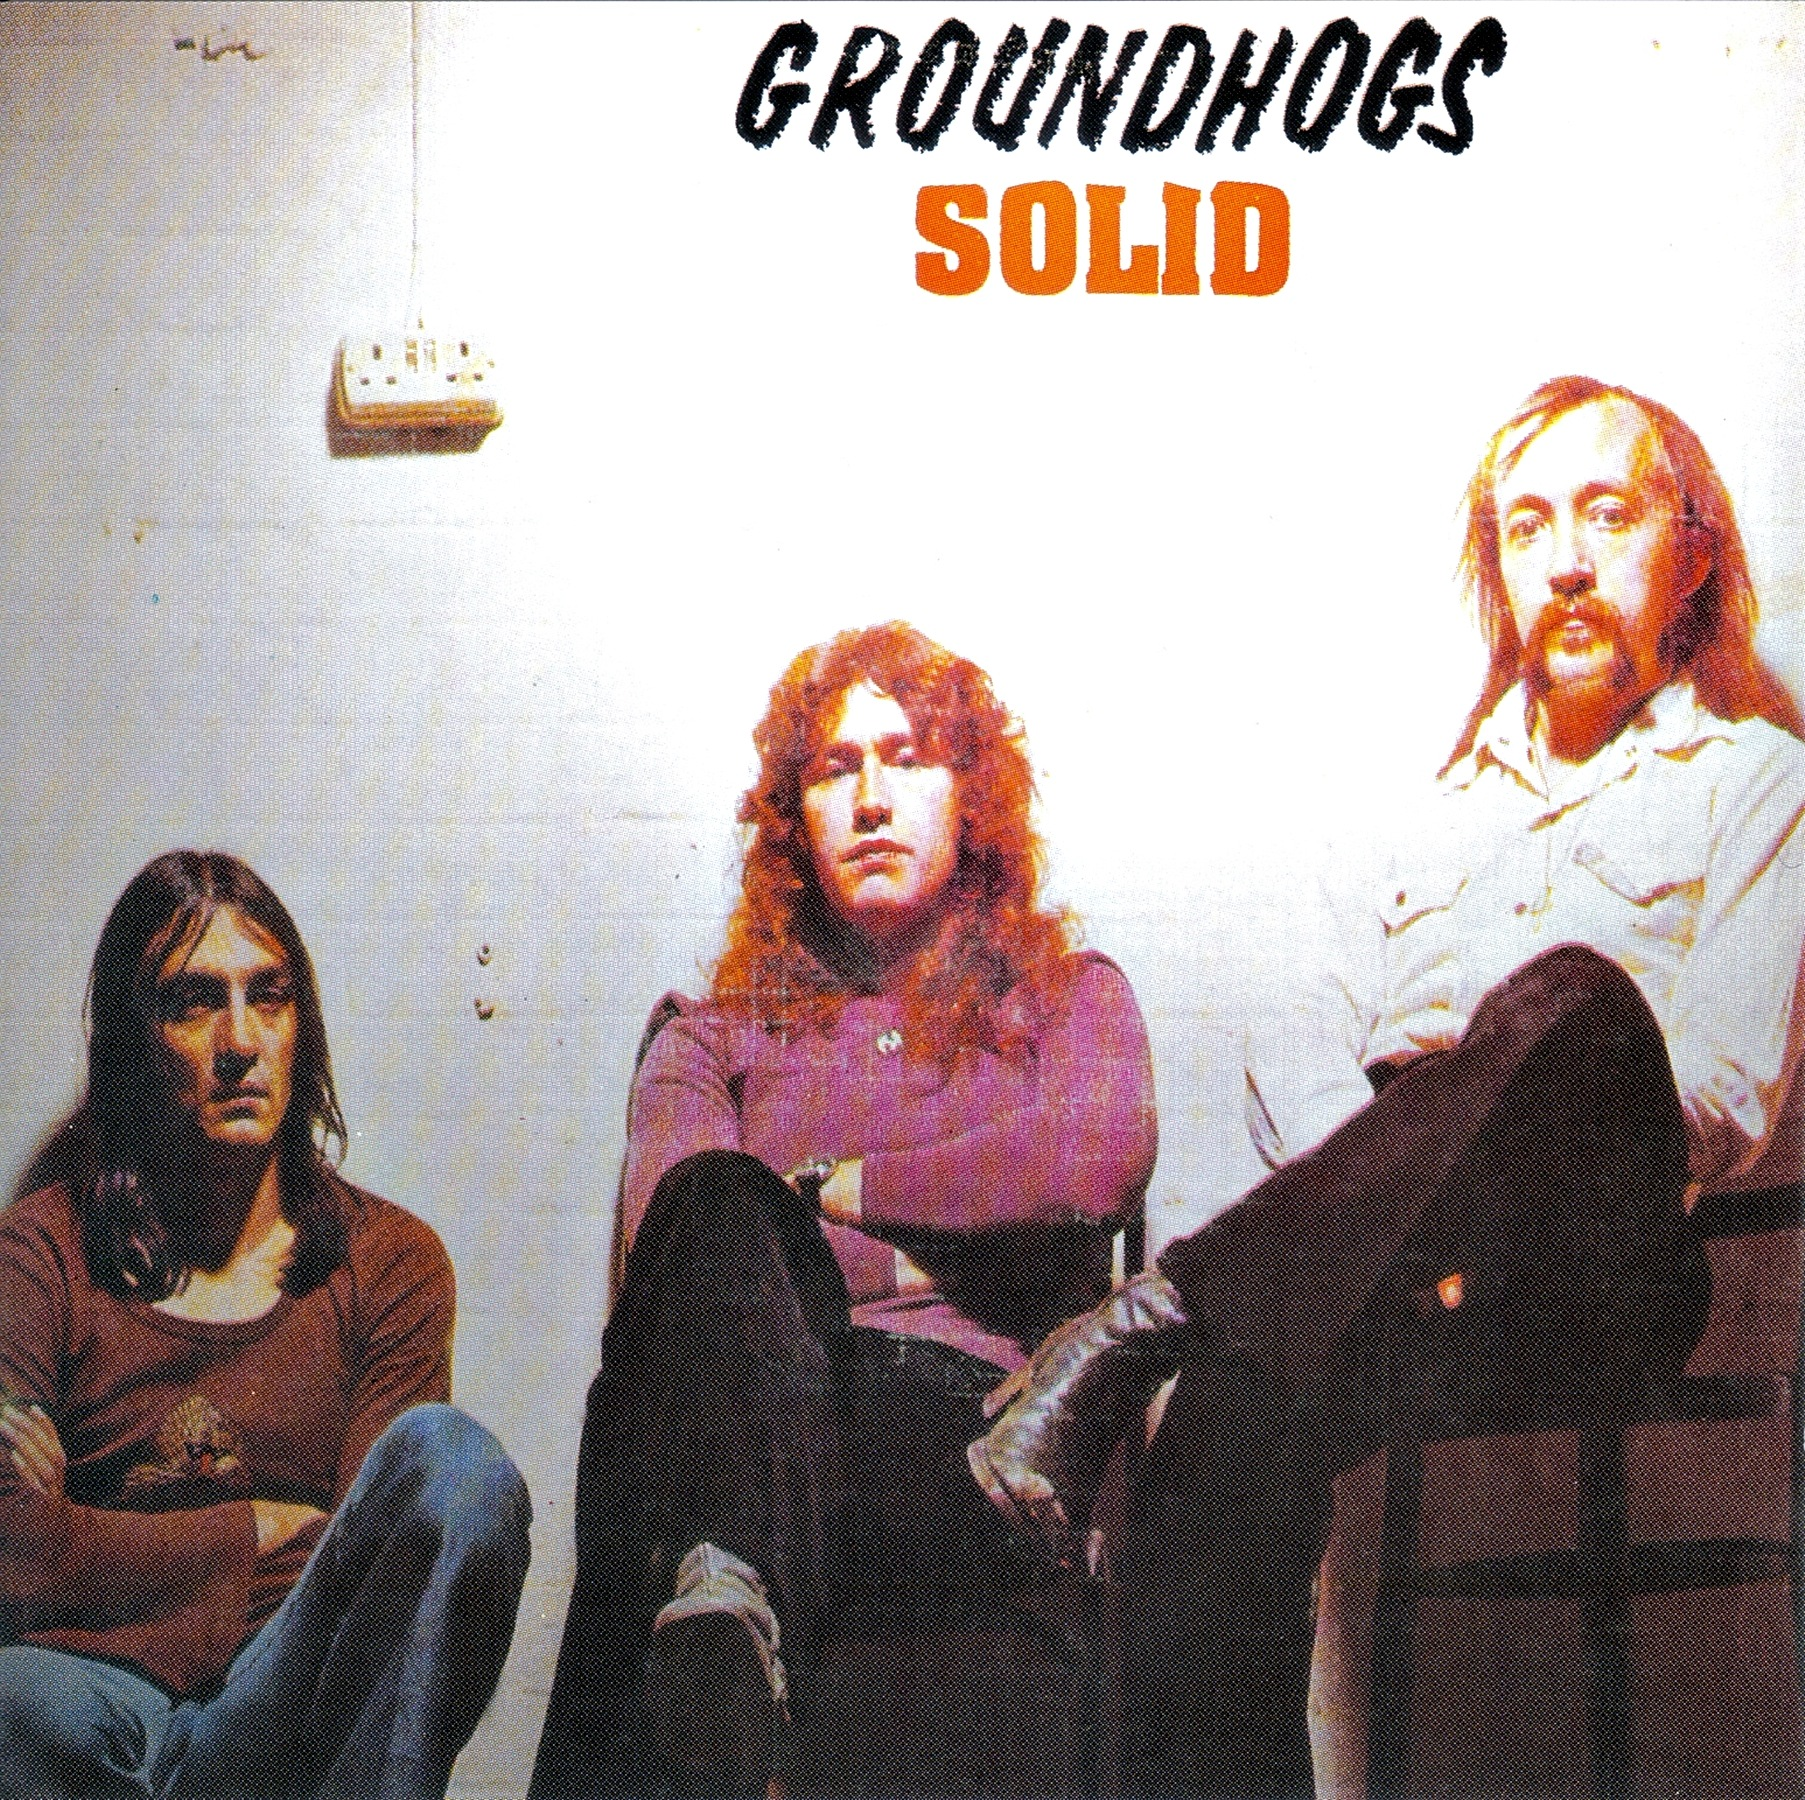 Groundhogs - Snow Storm